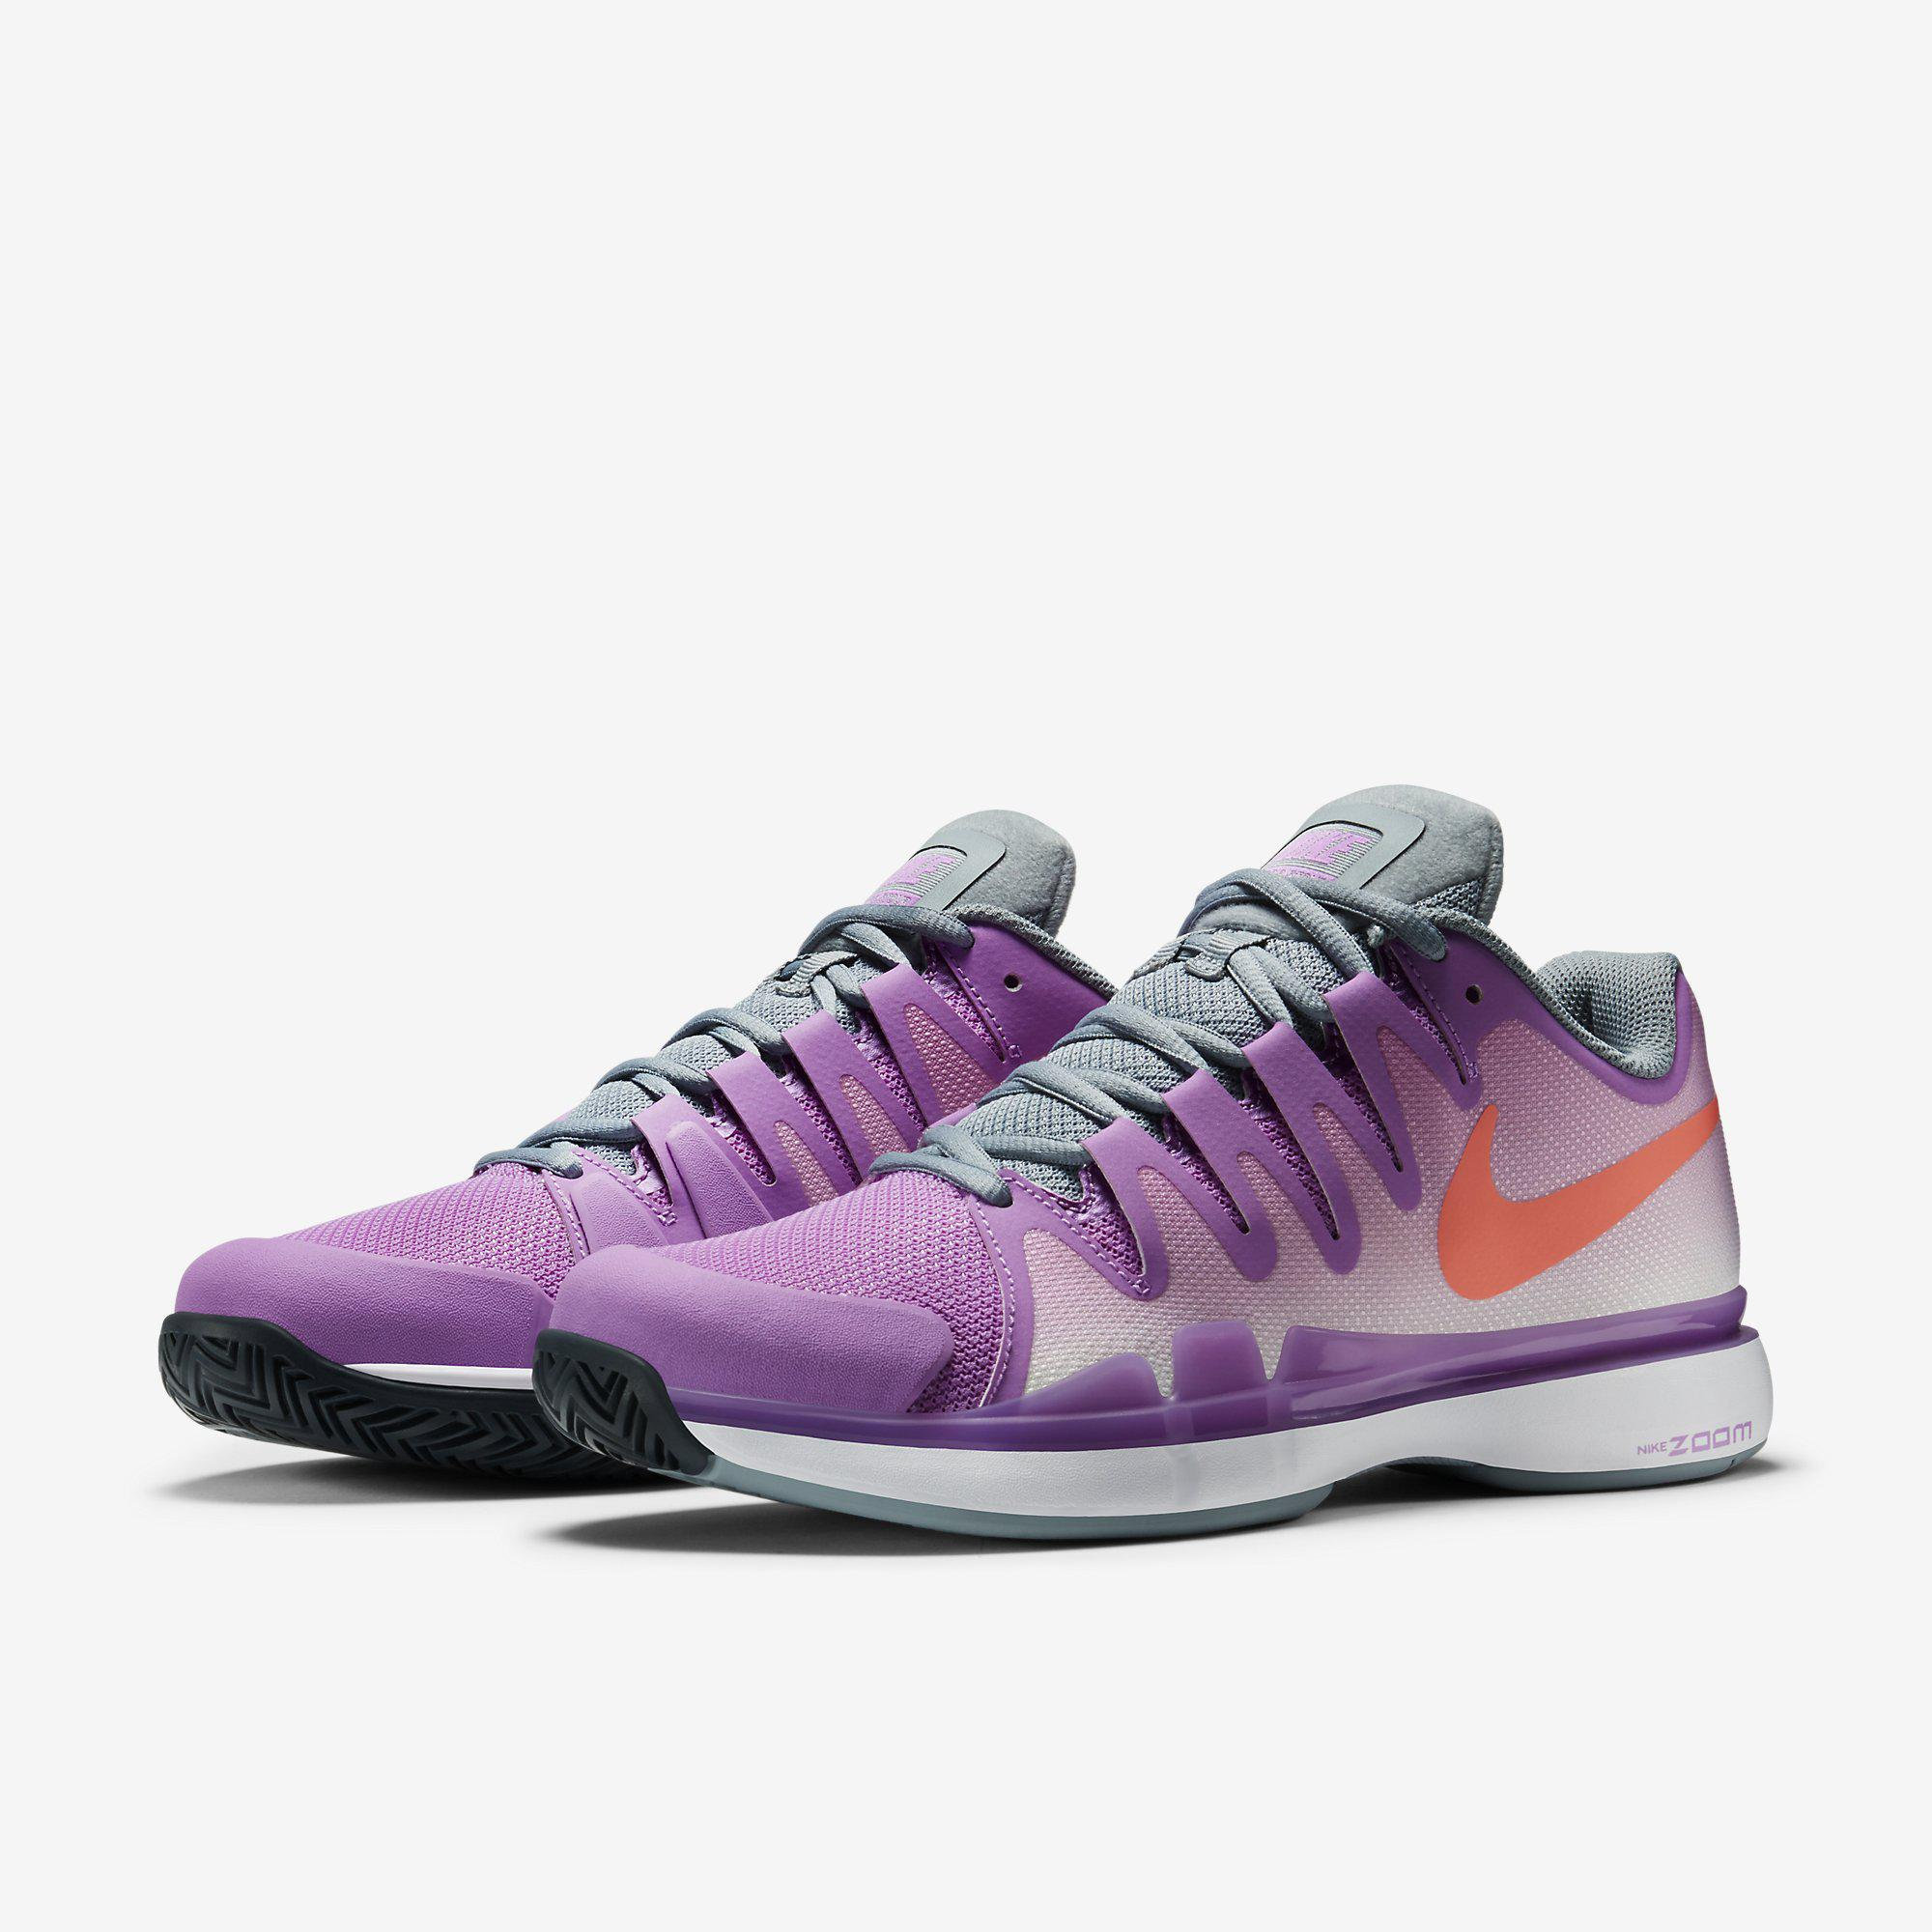 75e4dcb06abb Nike Womens Zoom Vapor 9.5 Tennis Shoes - Fuchsia Glow Dove Grey ...